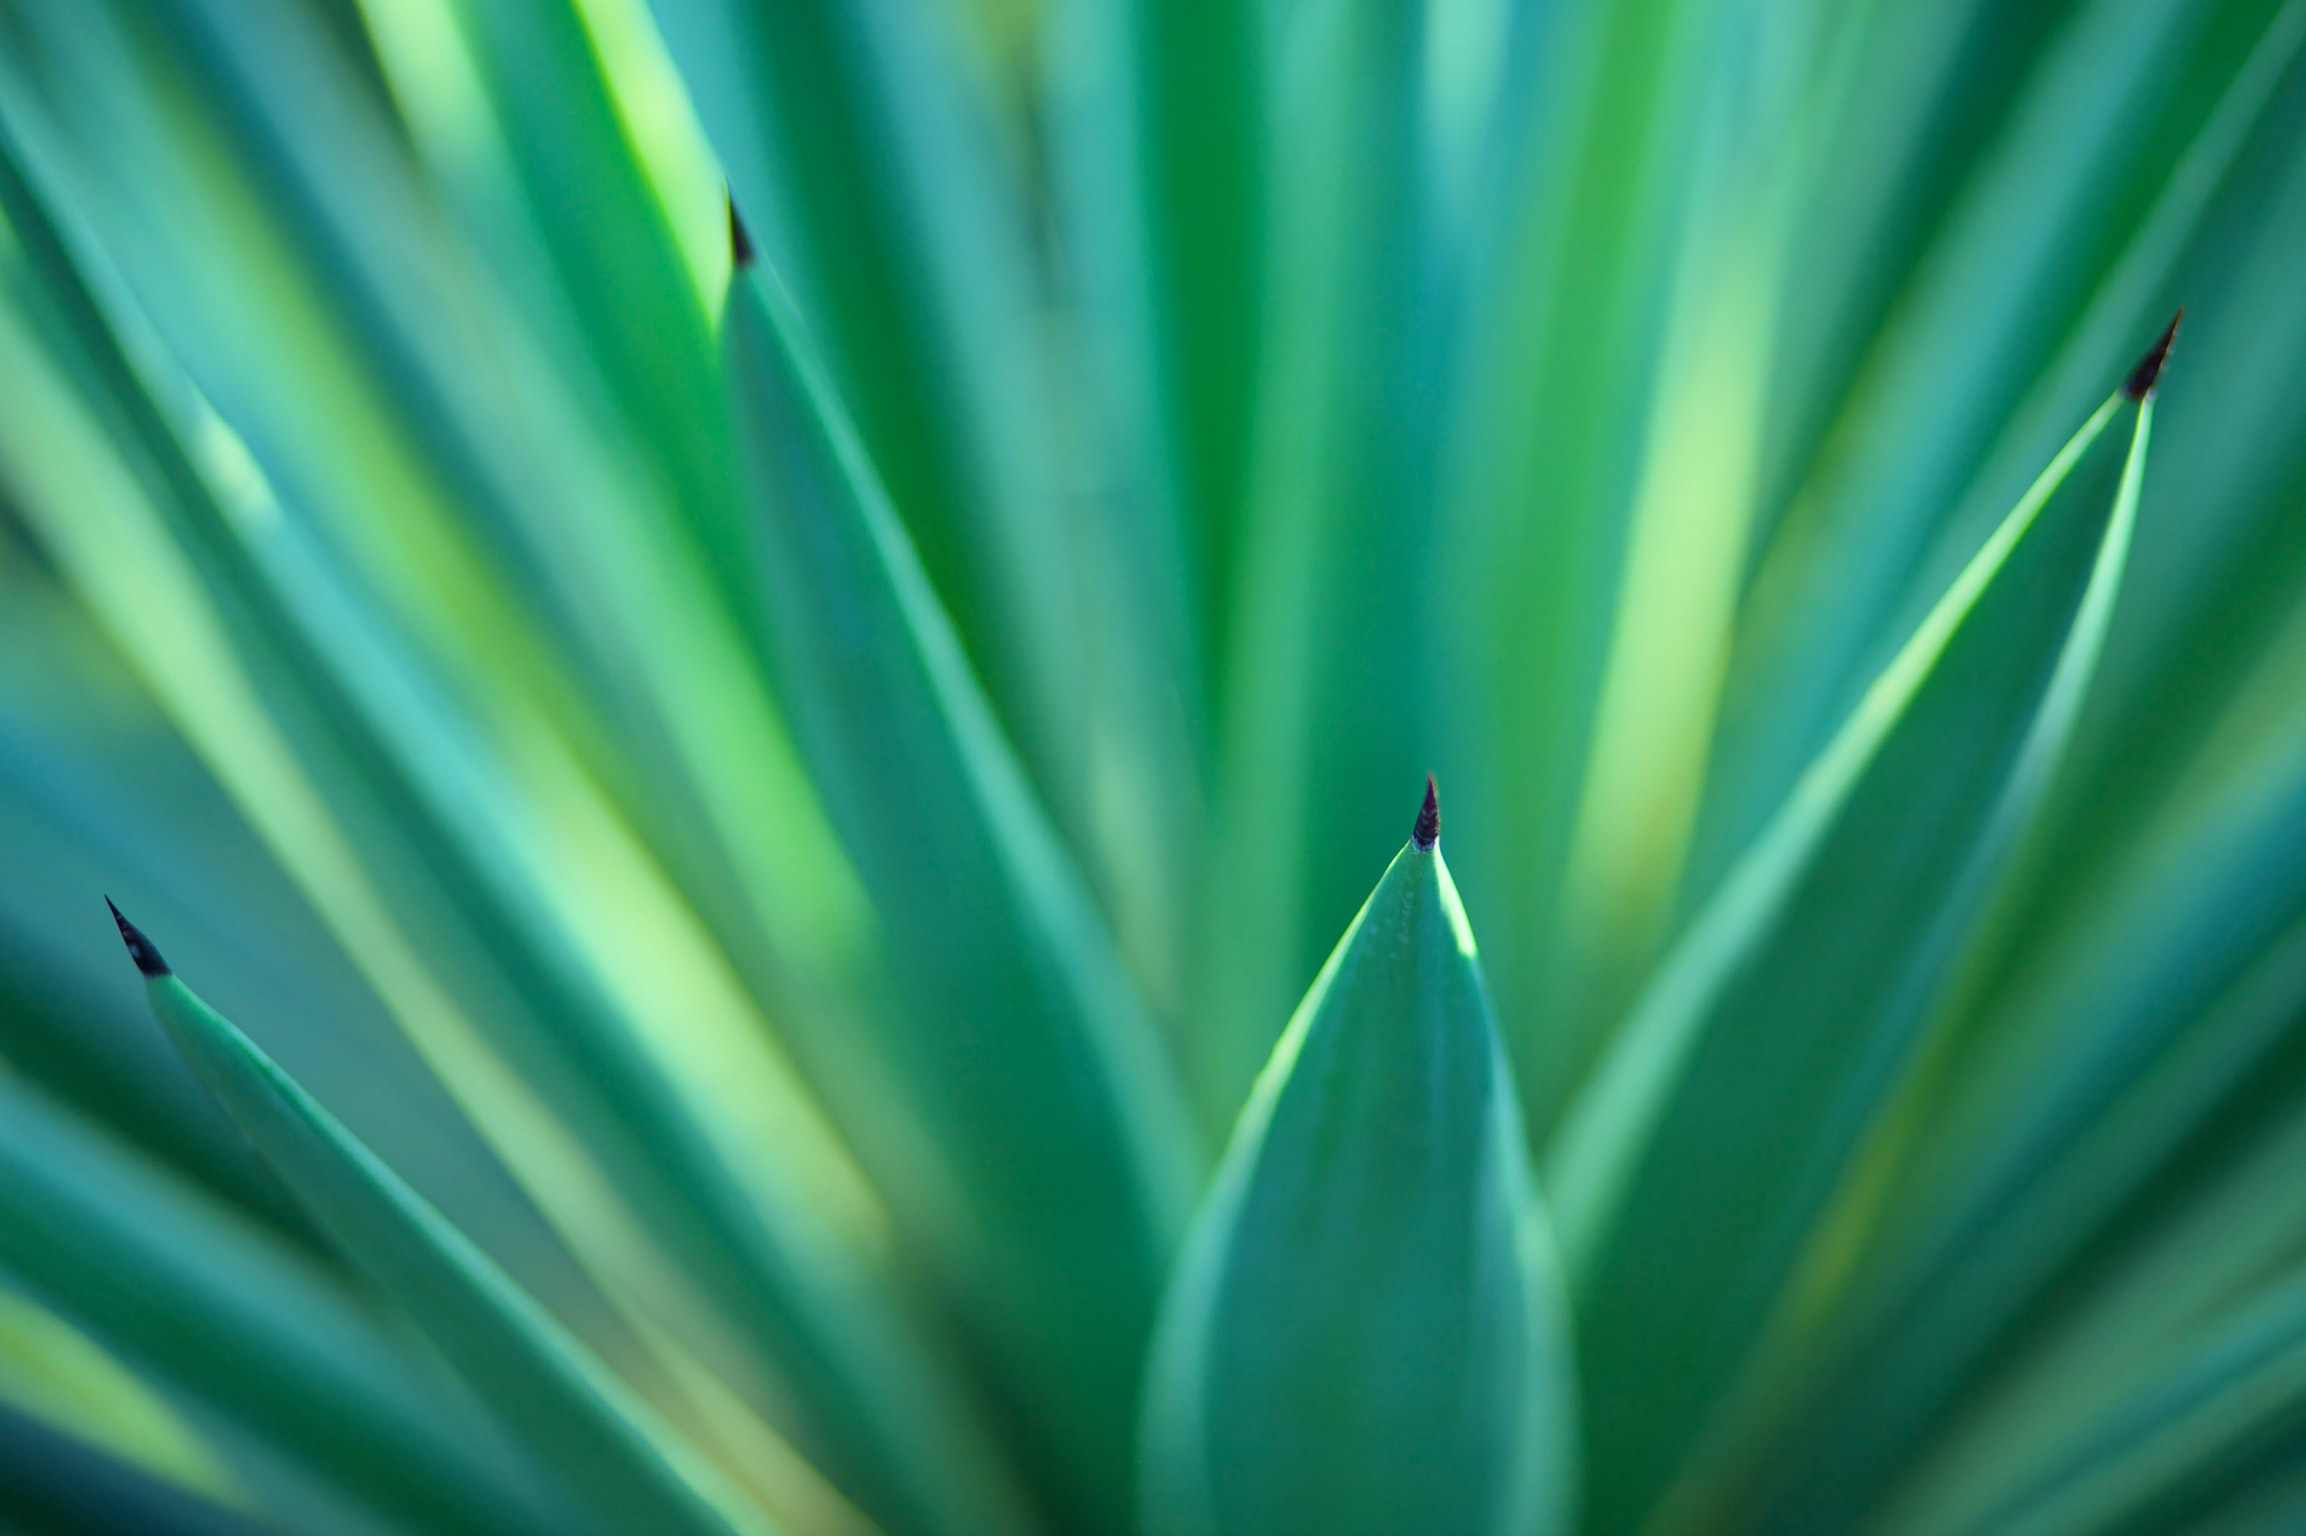 green snake plant in close up photography